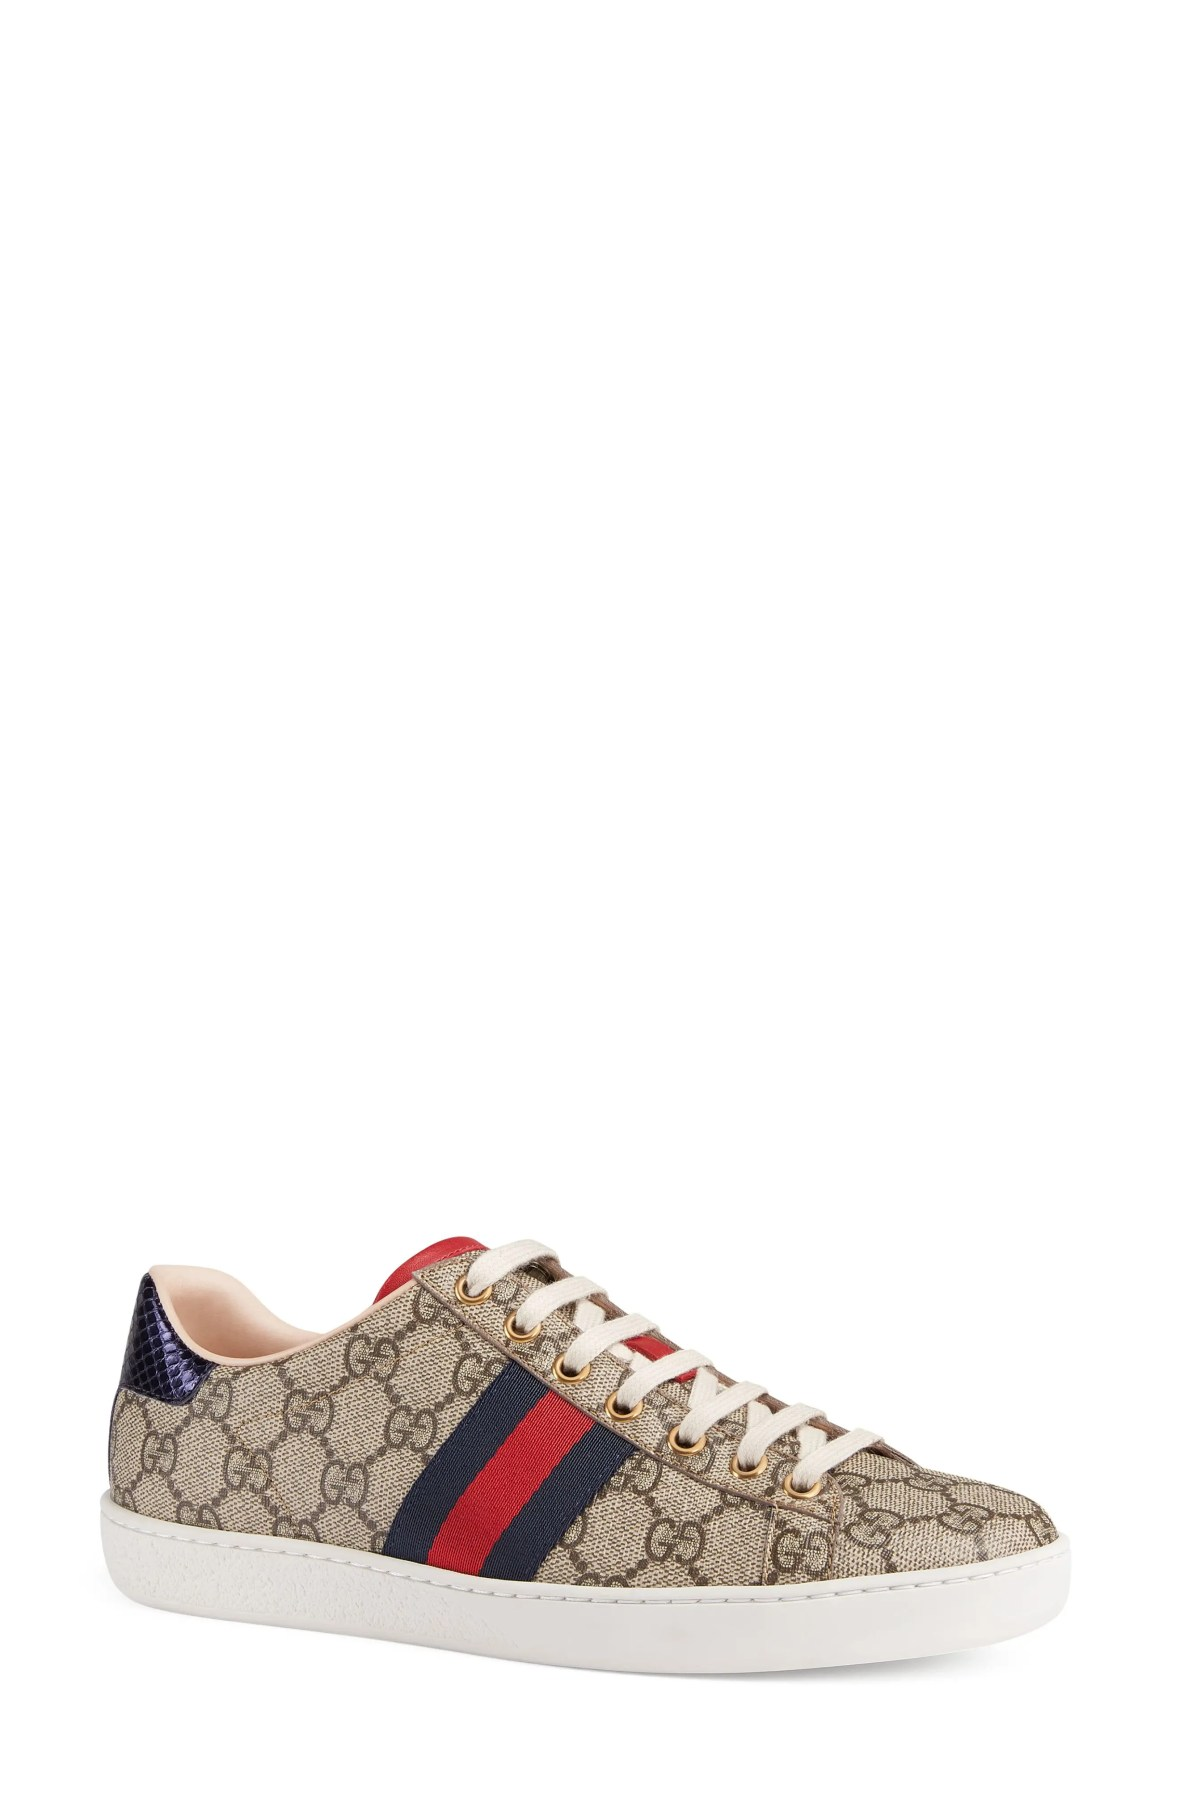 Gucci New Ace GG Supreme Sneaker (Women)